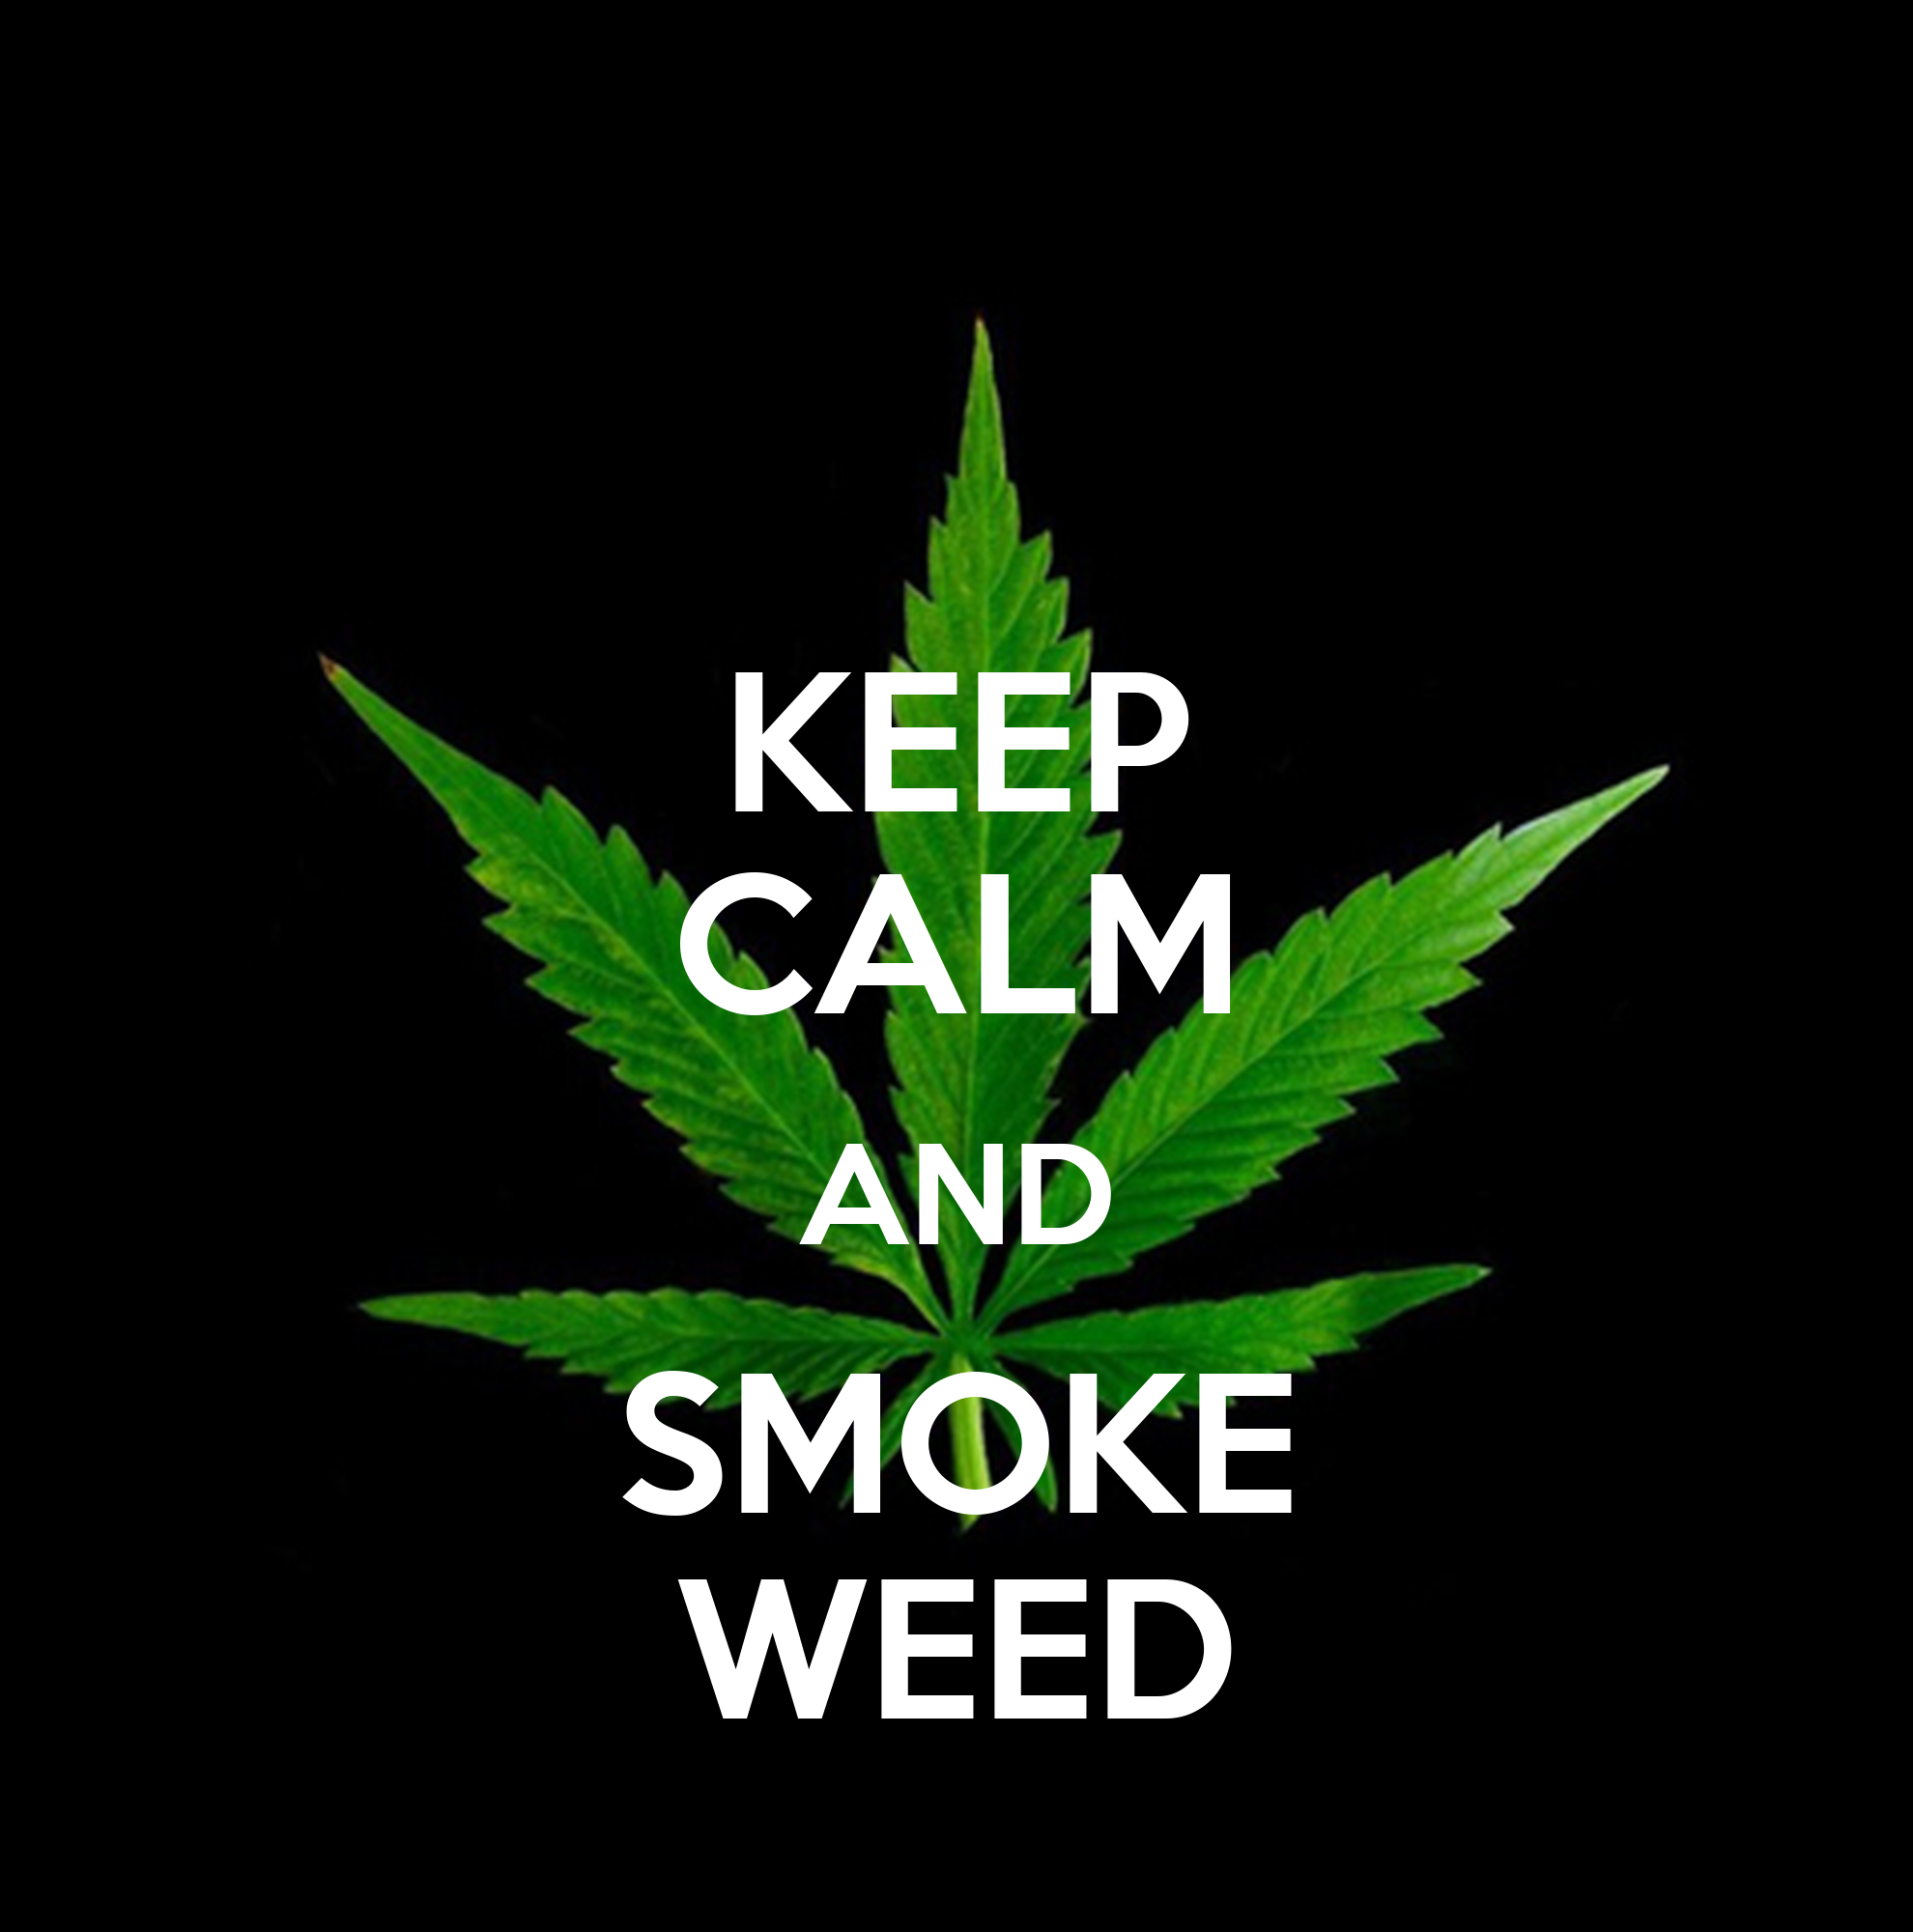 3d Wall Stickers Online Keep Calm And Smoke Weed 1608 Png